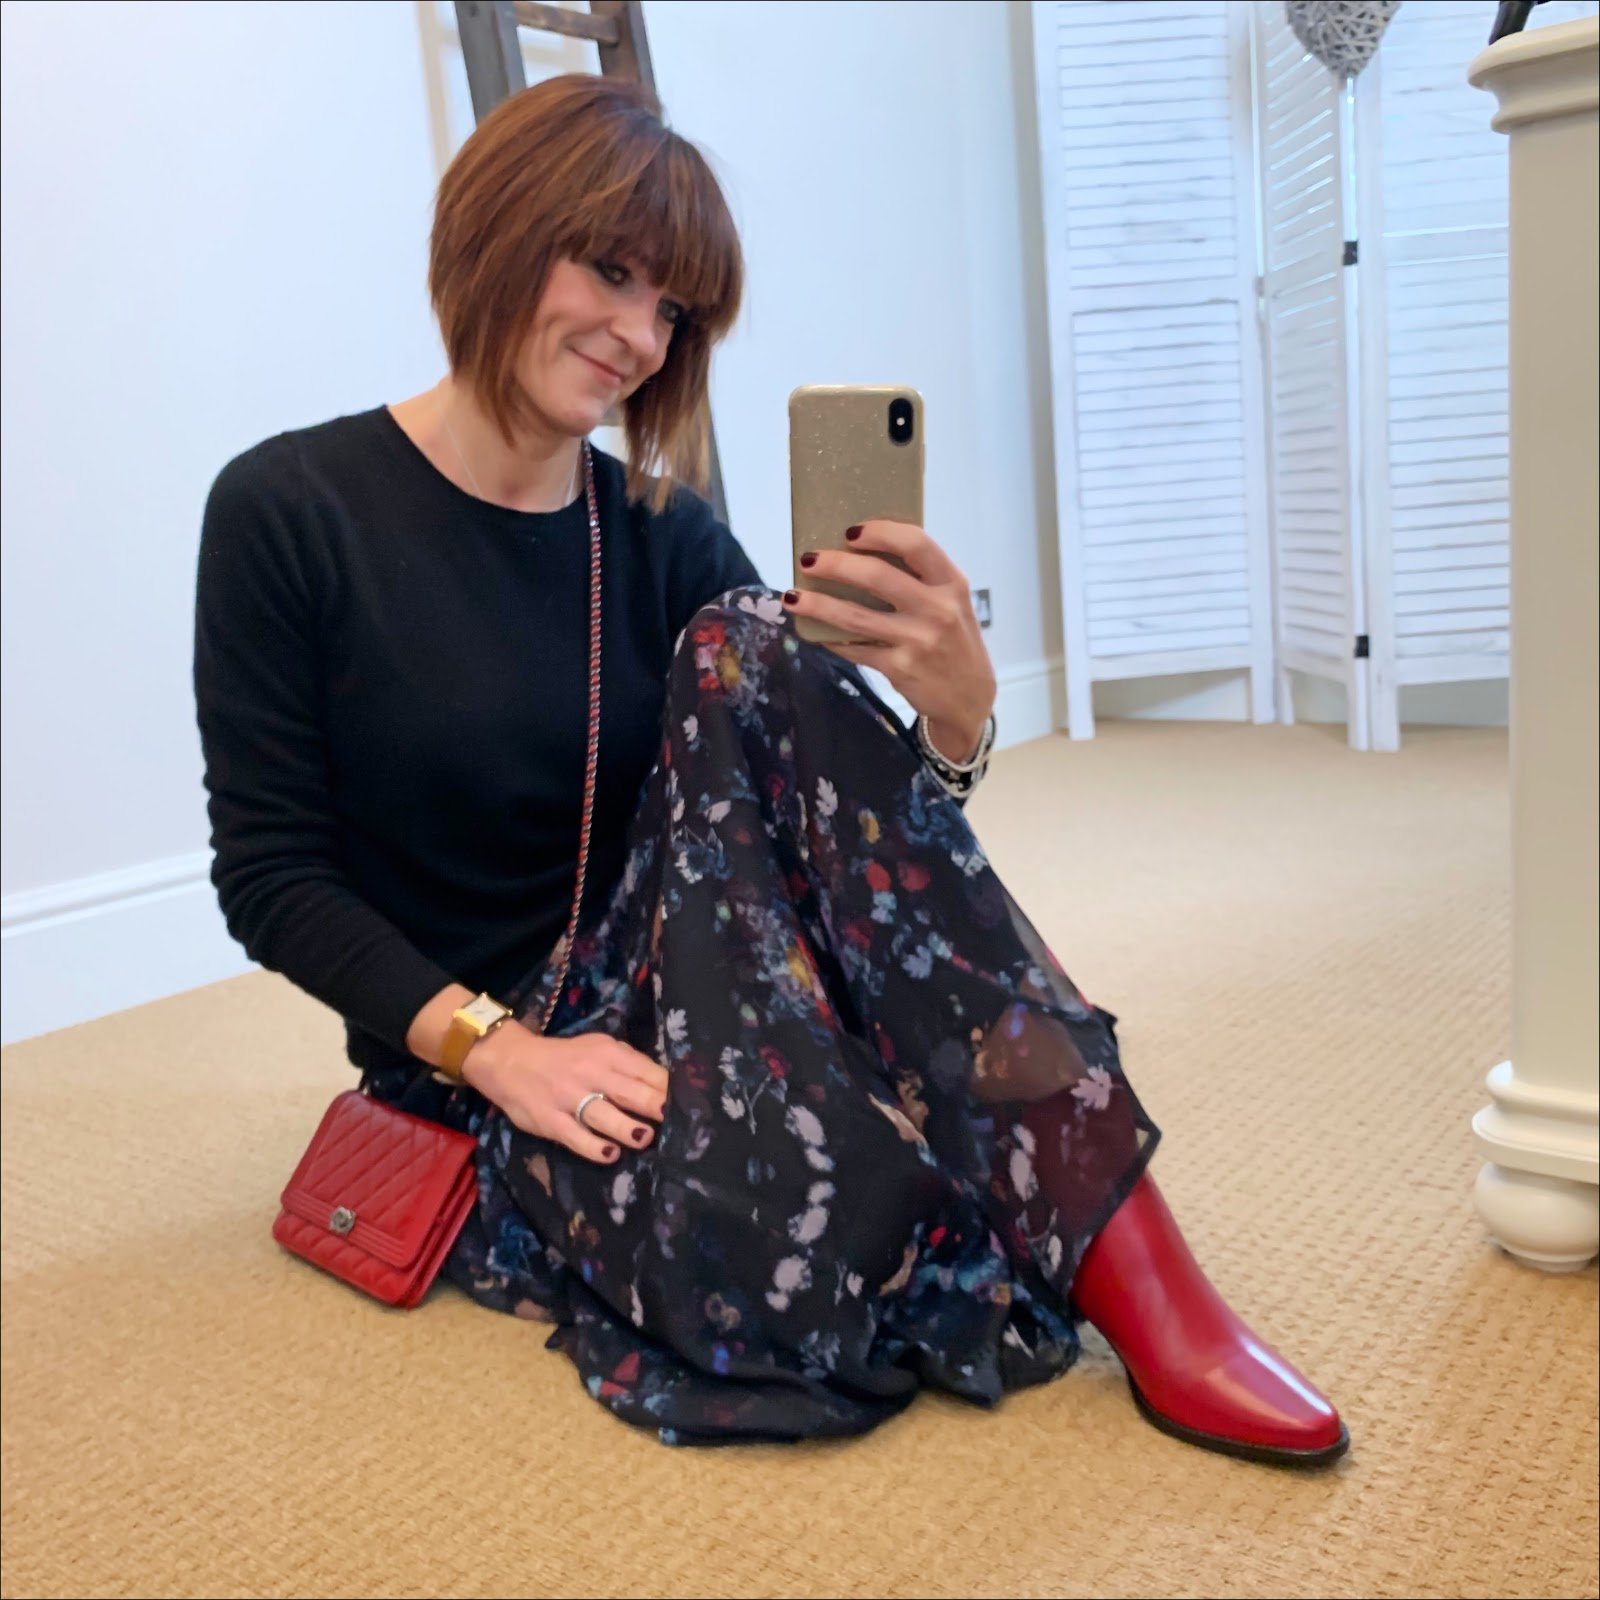 my midlife fashion, boden cashmere crew neck jumper, chanel wallet on chain, lily and lionel maxi skirt, jones bootmaker harriet leather ankle boots